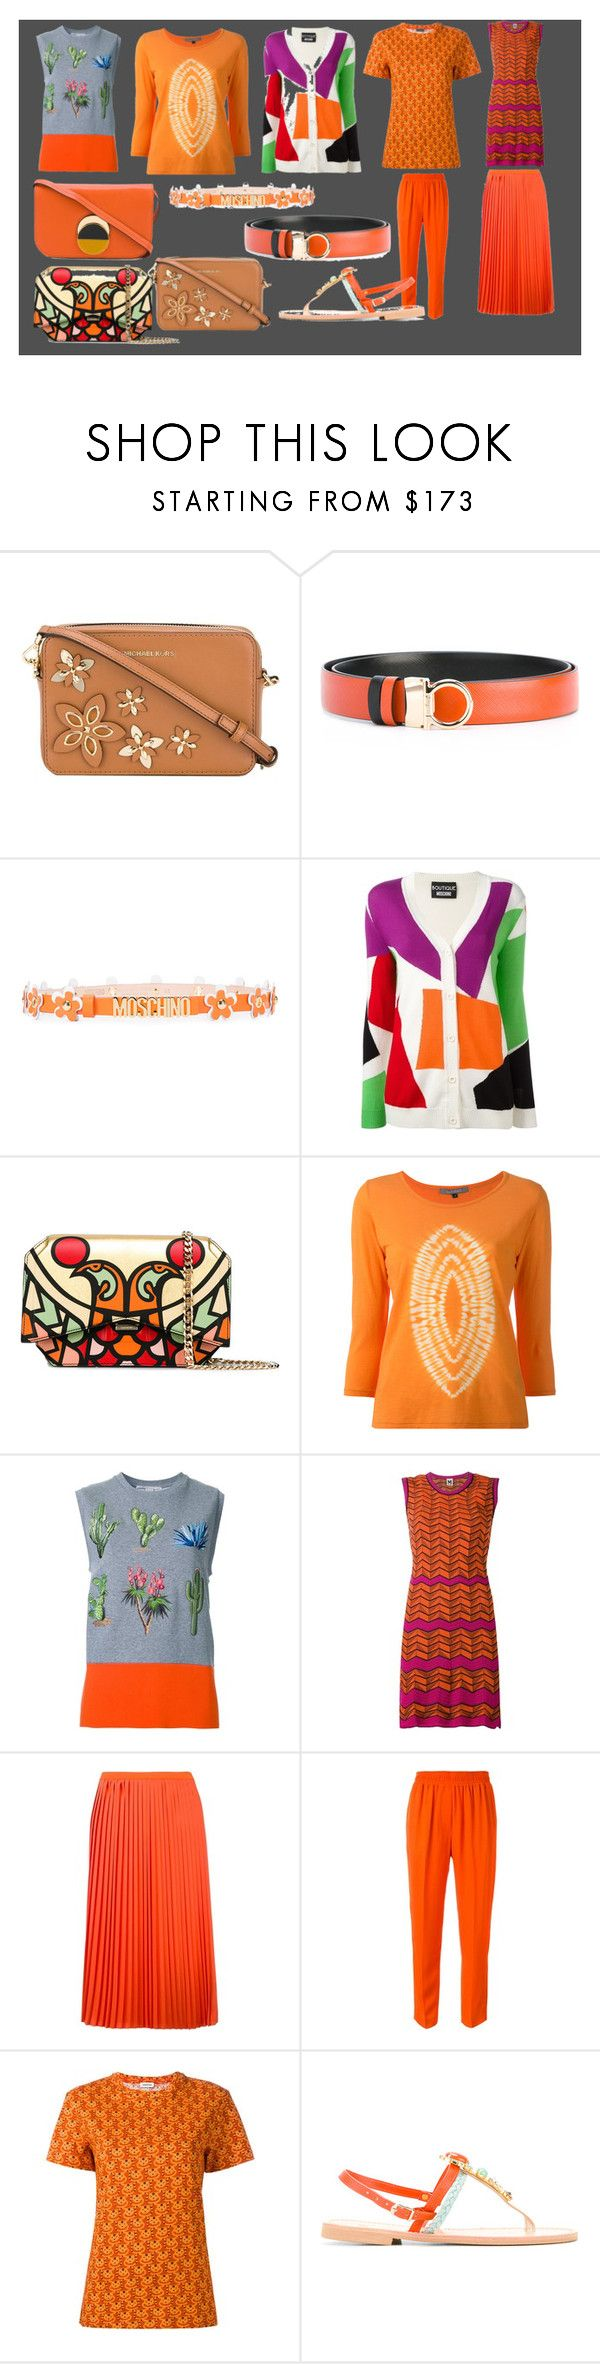 """""""casual wear weekend sale"""" by monica022 ❤ liked on Polyvore featuring MICHAEL Michael Kors, Salvatore Ferragamo, Moschino, Boutique Moschino, Givenchy, Suzusan, STELLA McCARTNEY, M Missoni, MM6 Maison Margiela and 3.1 Phillip Lim"""